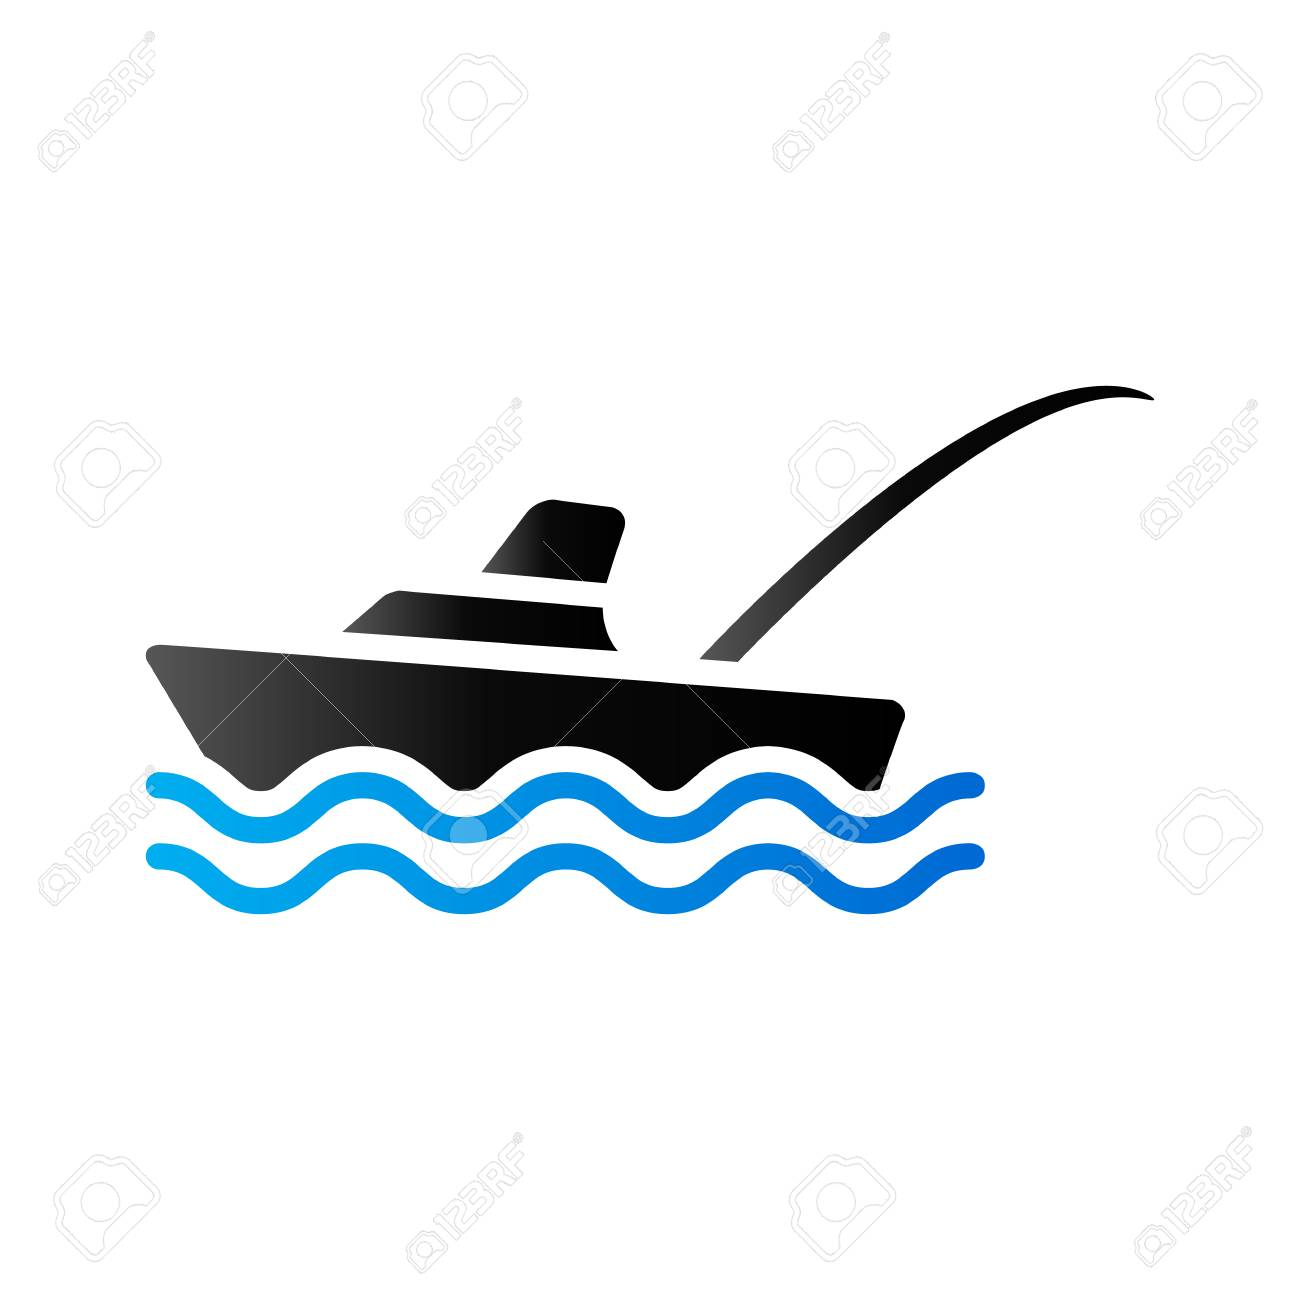 Fishing Boat Icon In Duo Tone Color Sport Recreation Ship Transport Royalty Free Cliparts Vectors And Stock Illustration Image 71631647